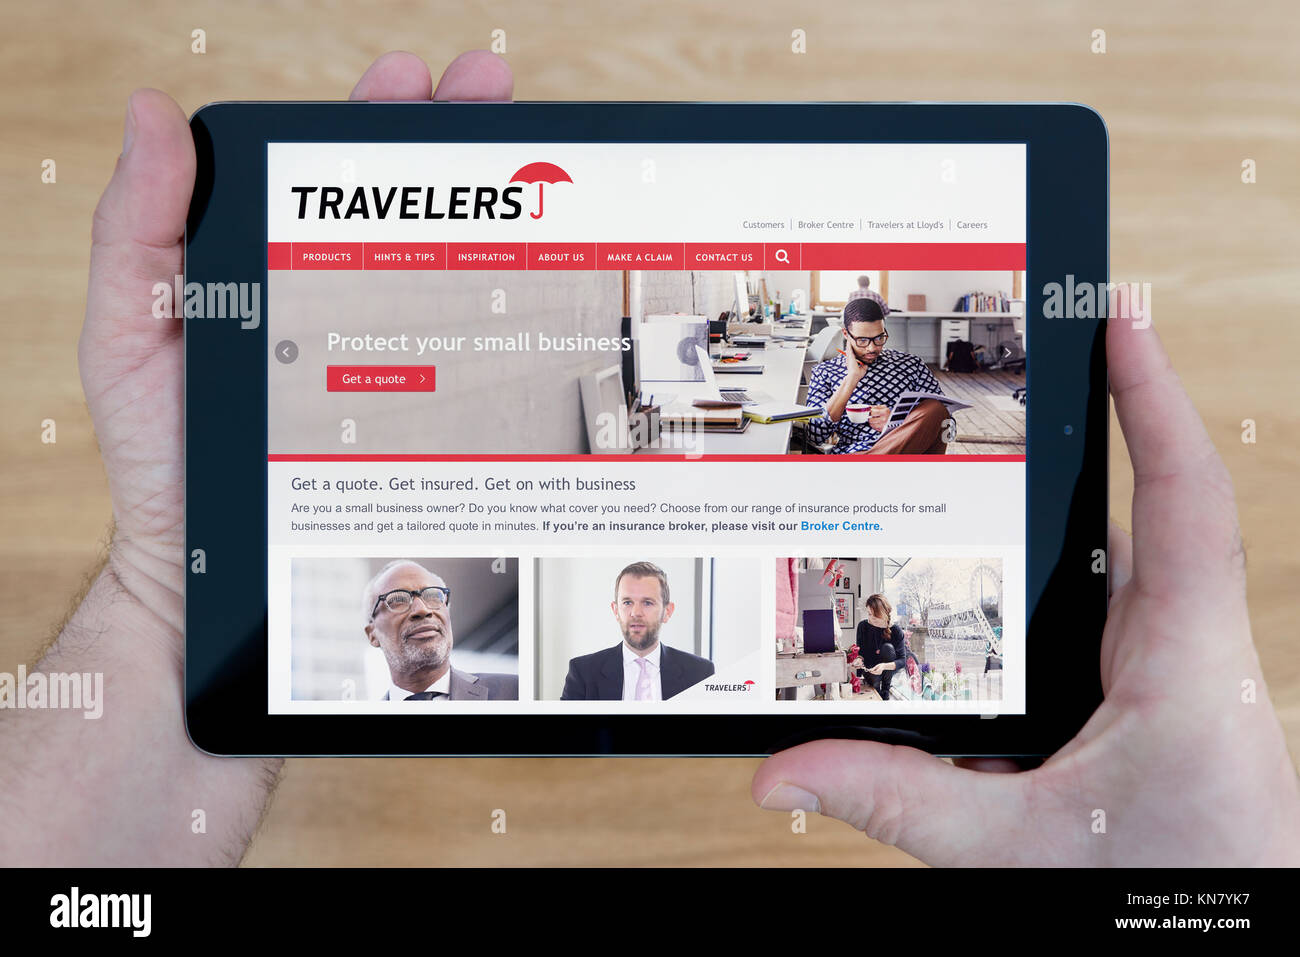 A man looks at the Travelers website on his iPad tablet device, shot against a wooden table top background (Editorial - Stock Image